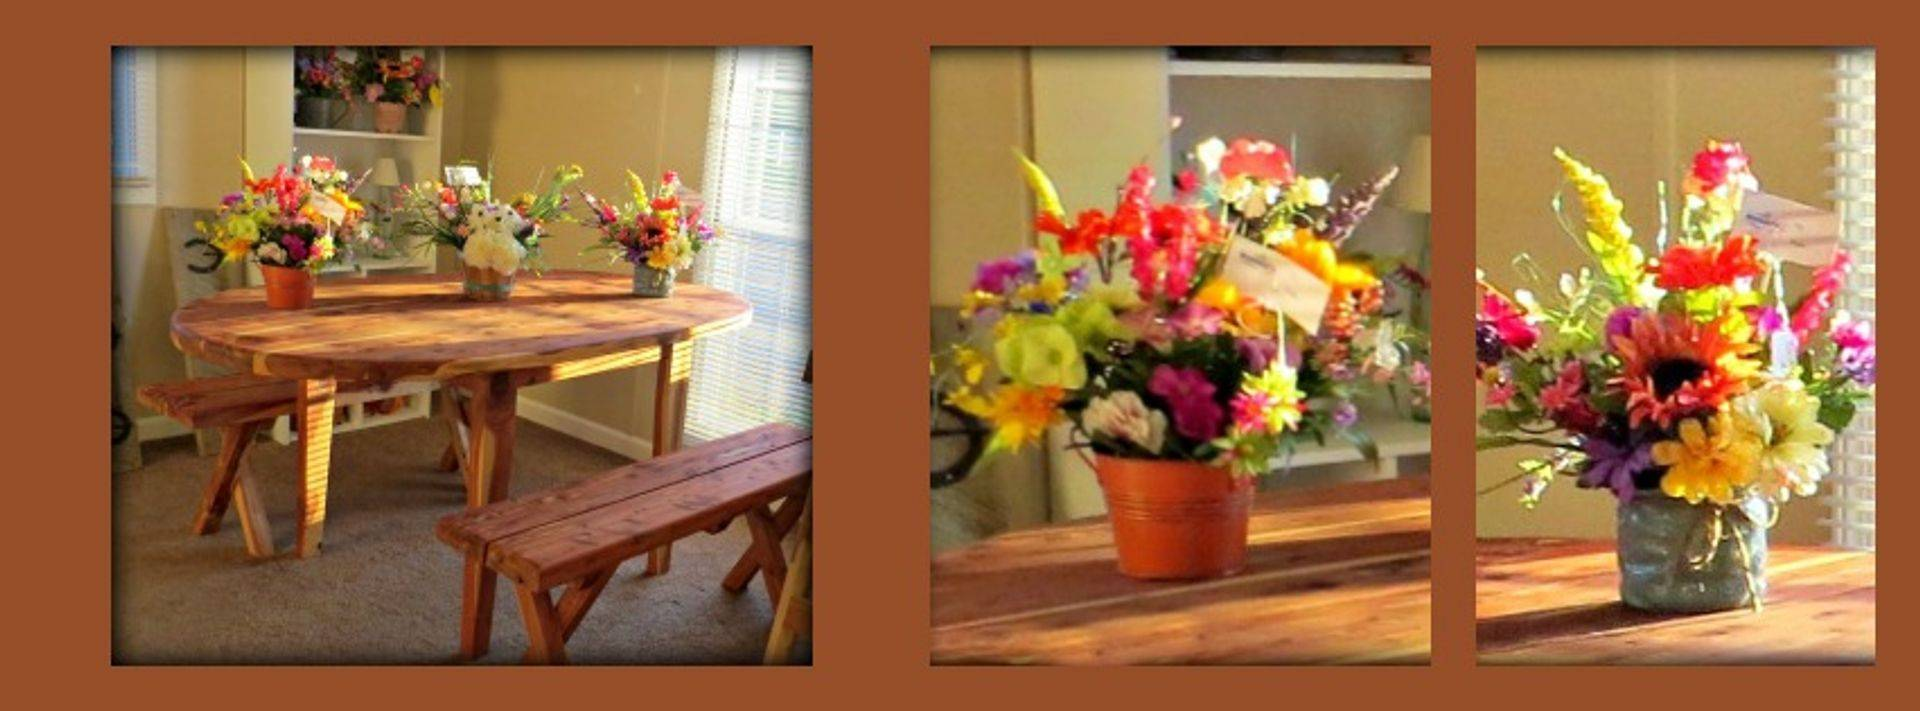 Floral Designs in Lynchburg, VA at Yard 29